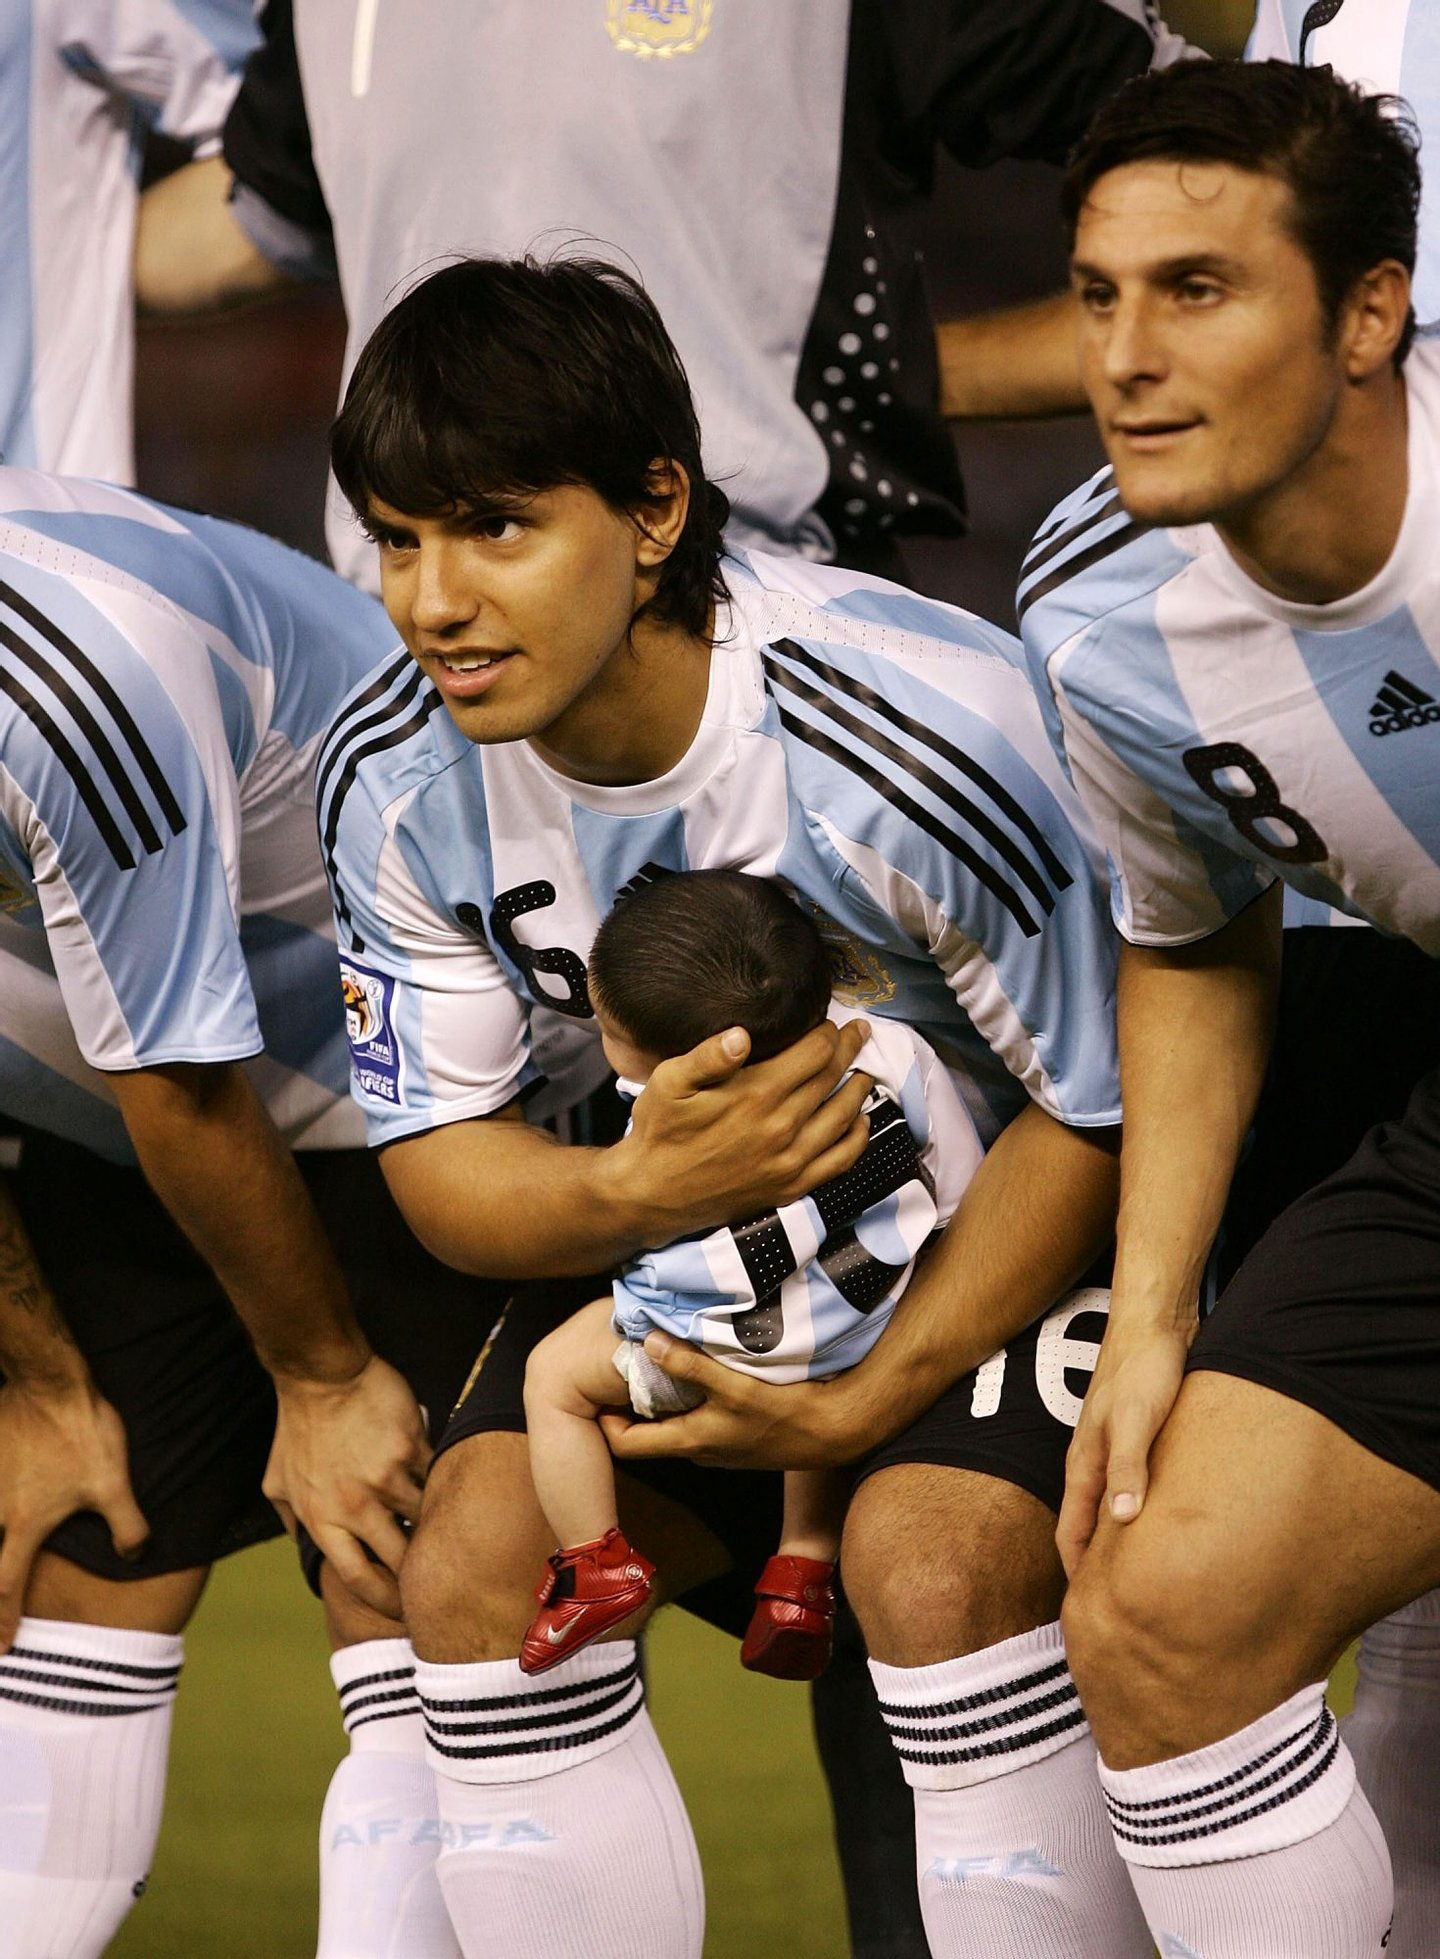 BUENOS AIRES, ARGENTINA - MARCH 28: Sergio Aguero of Argentina poses for photographs with his son Benjamin prior to the 2010 FIFA World Cup South African qualifier match between Argentina and Venezuela at River Plate Stadium on March 28, 2009 in Buenos Aires, Argentina. (Photo by Photogamma/Getty Images)